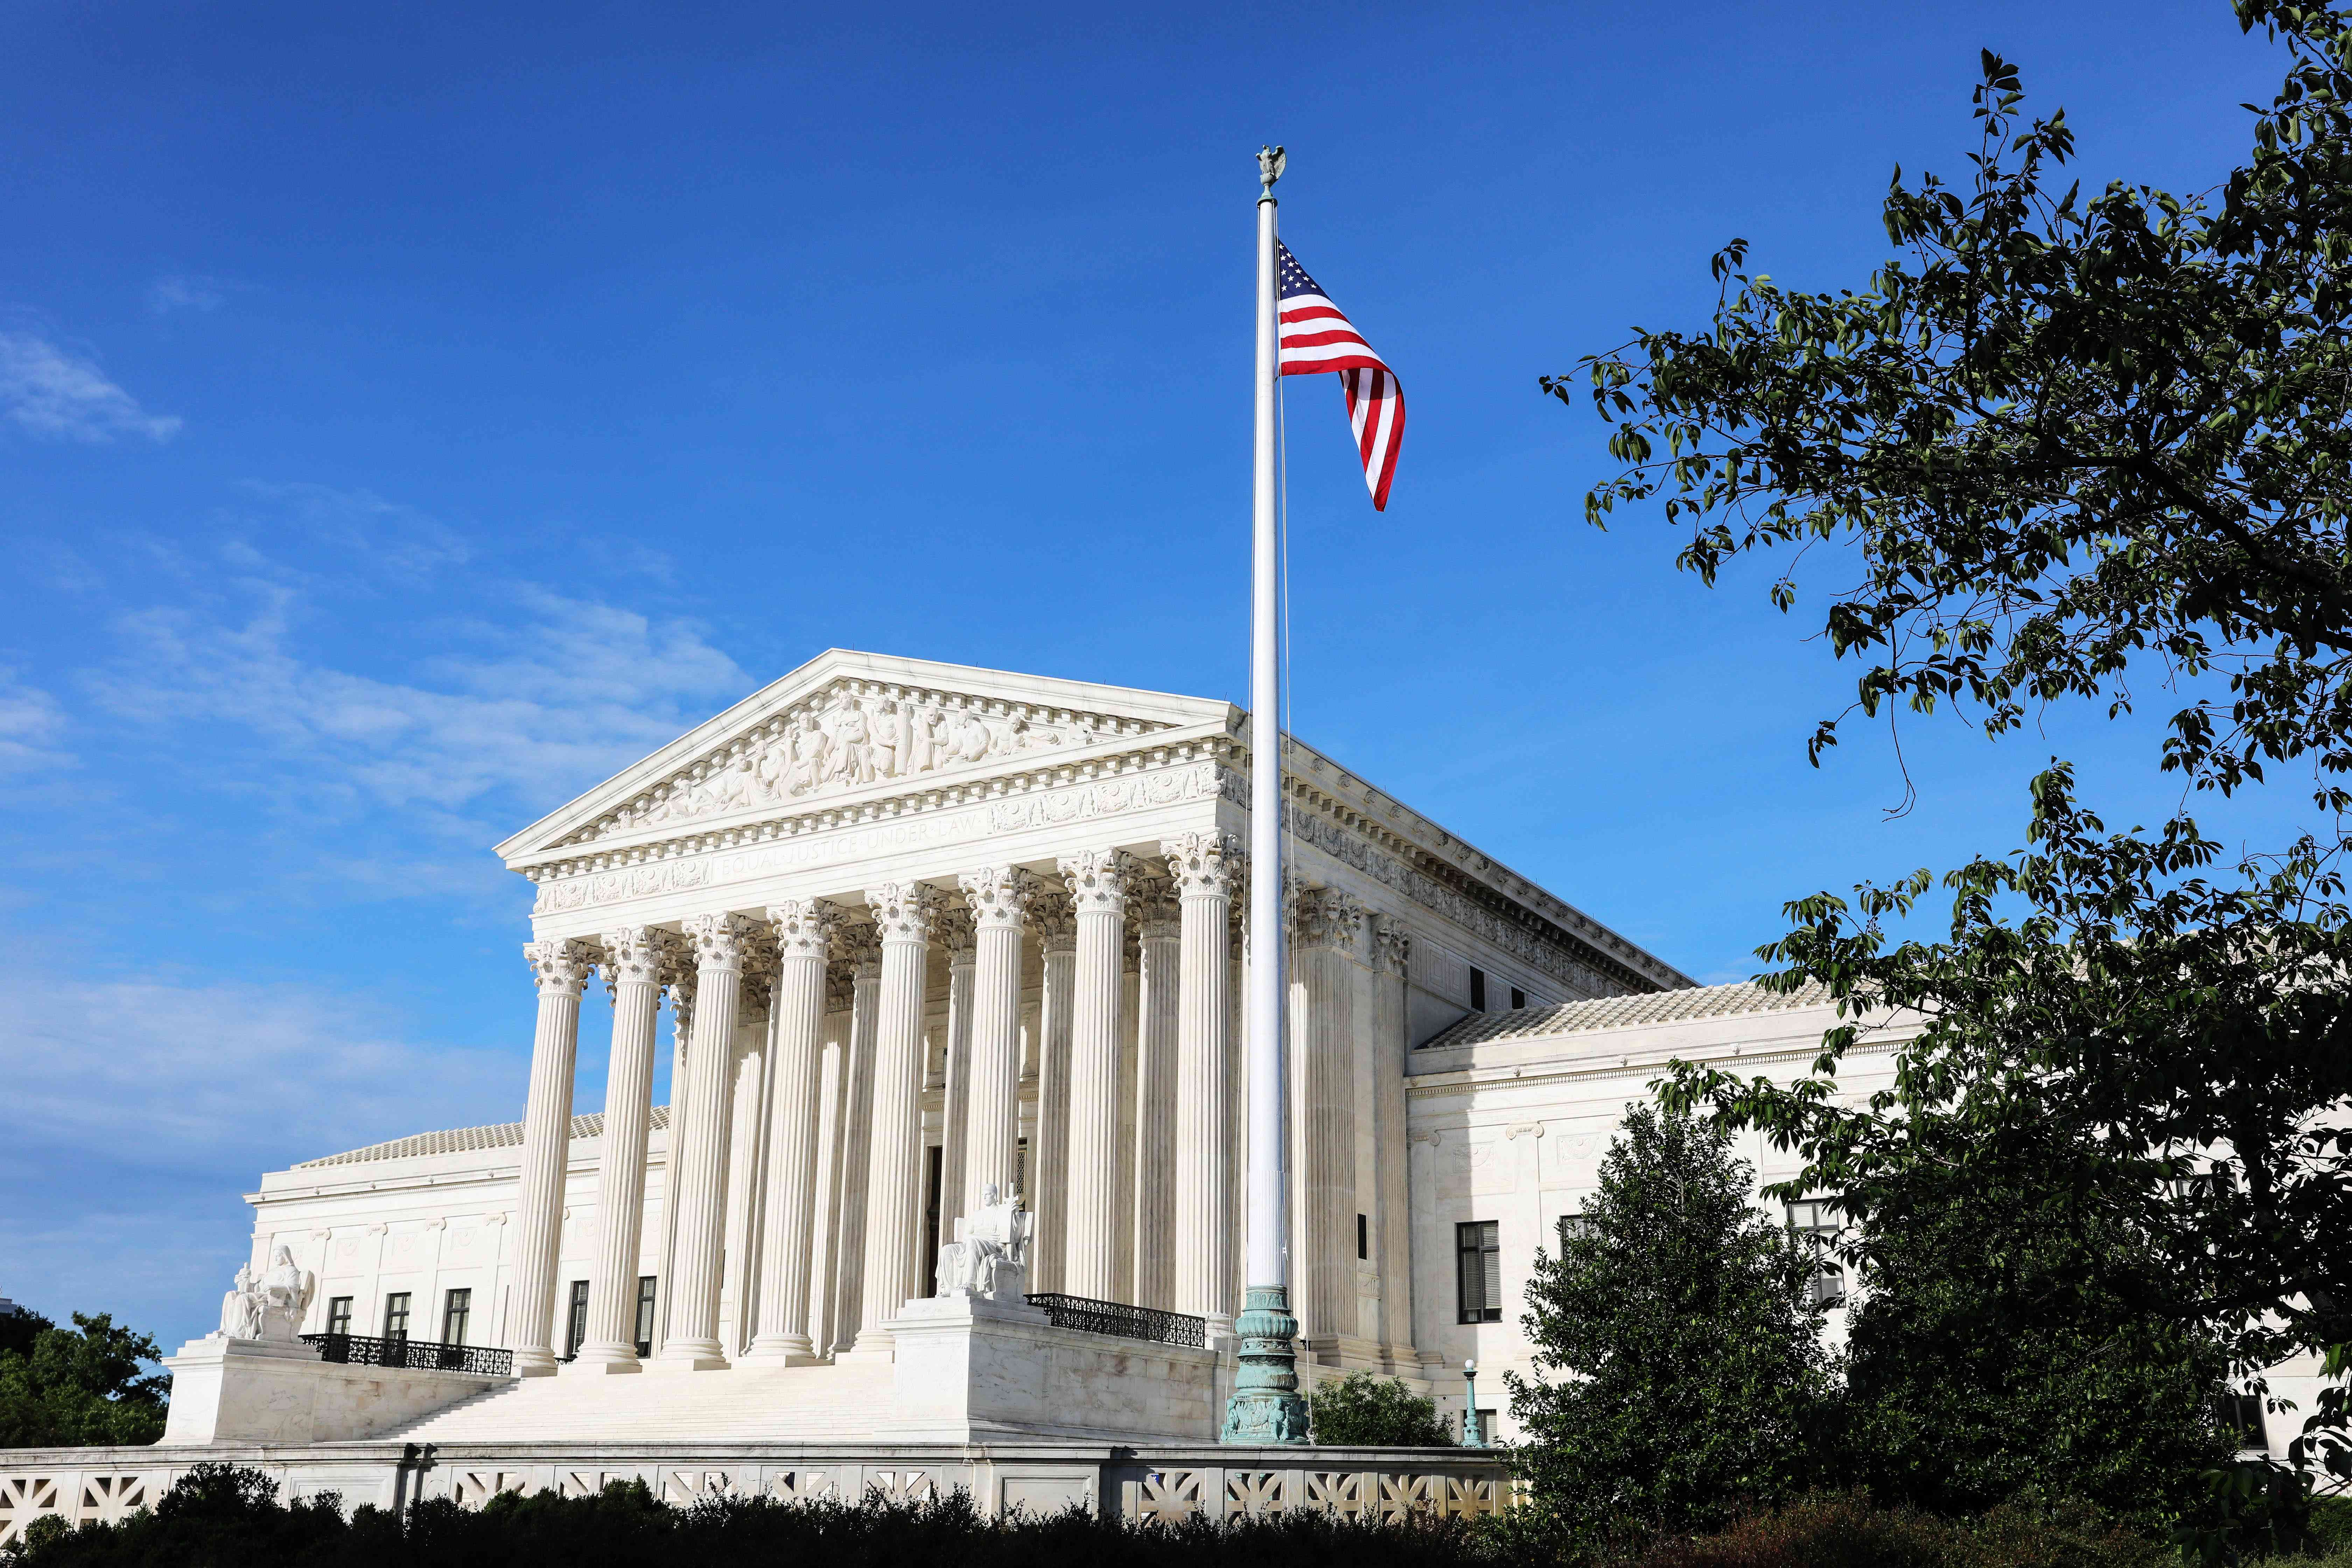 Exterior of the Supreme Court with the american flag waving